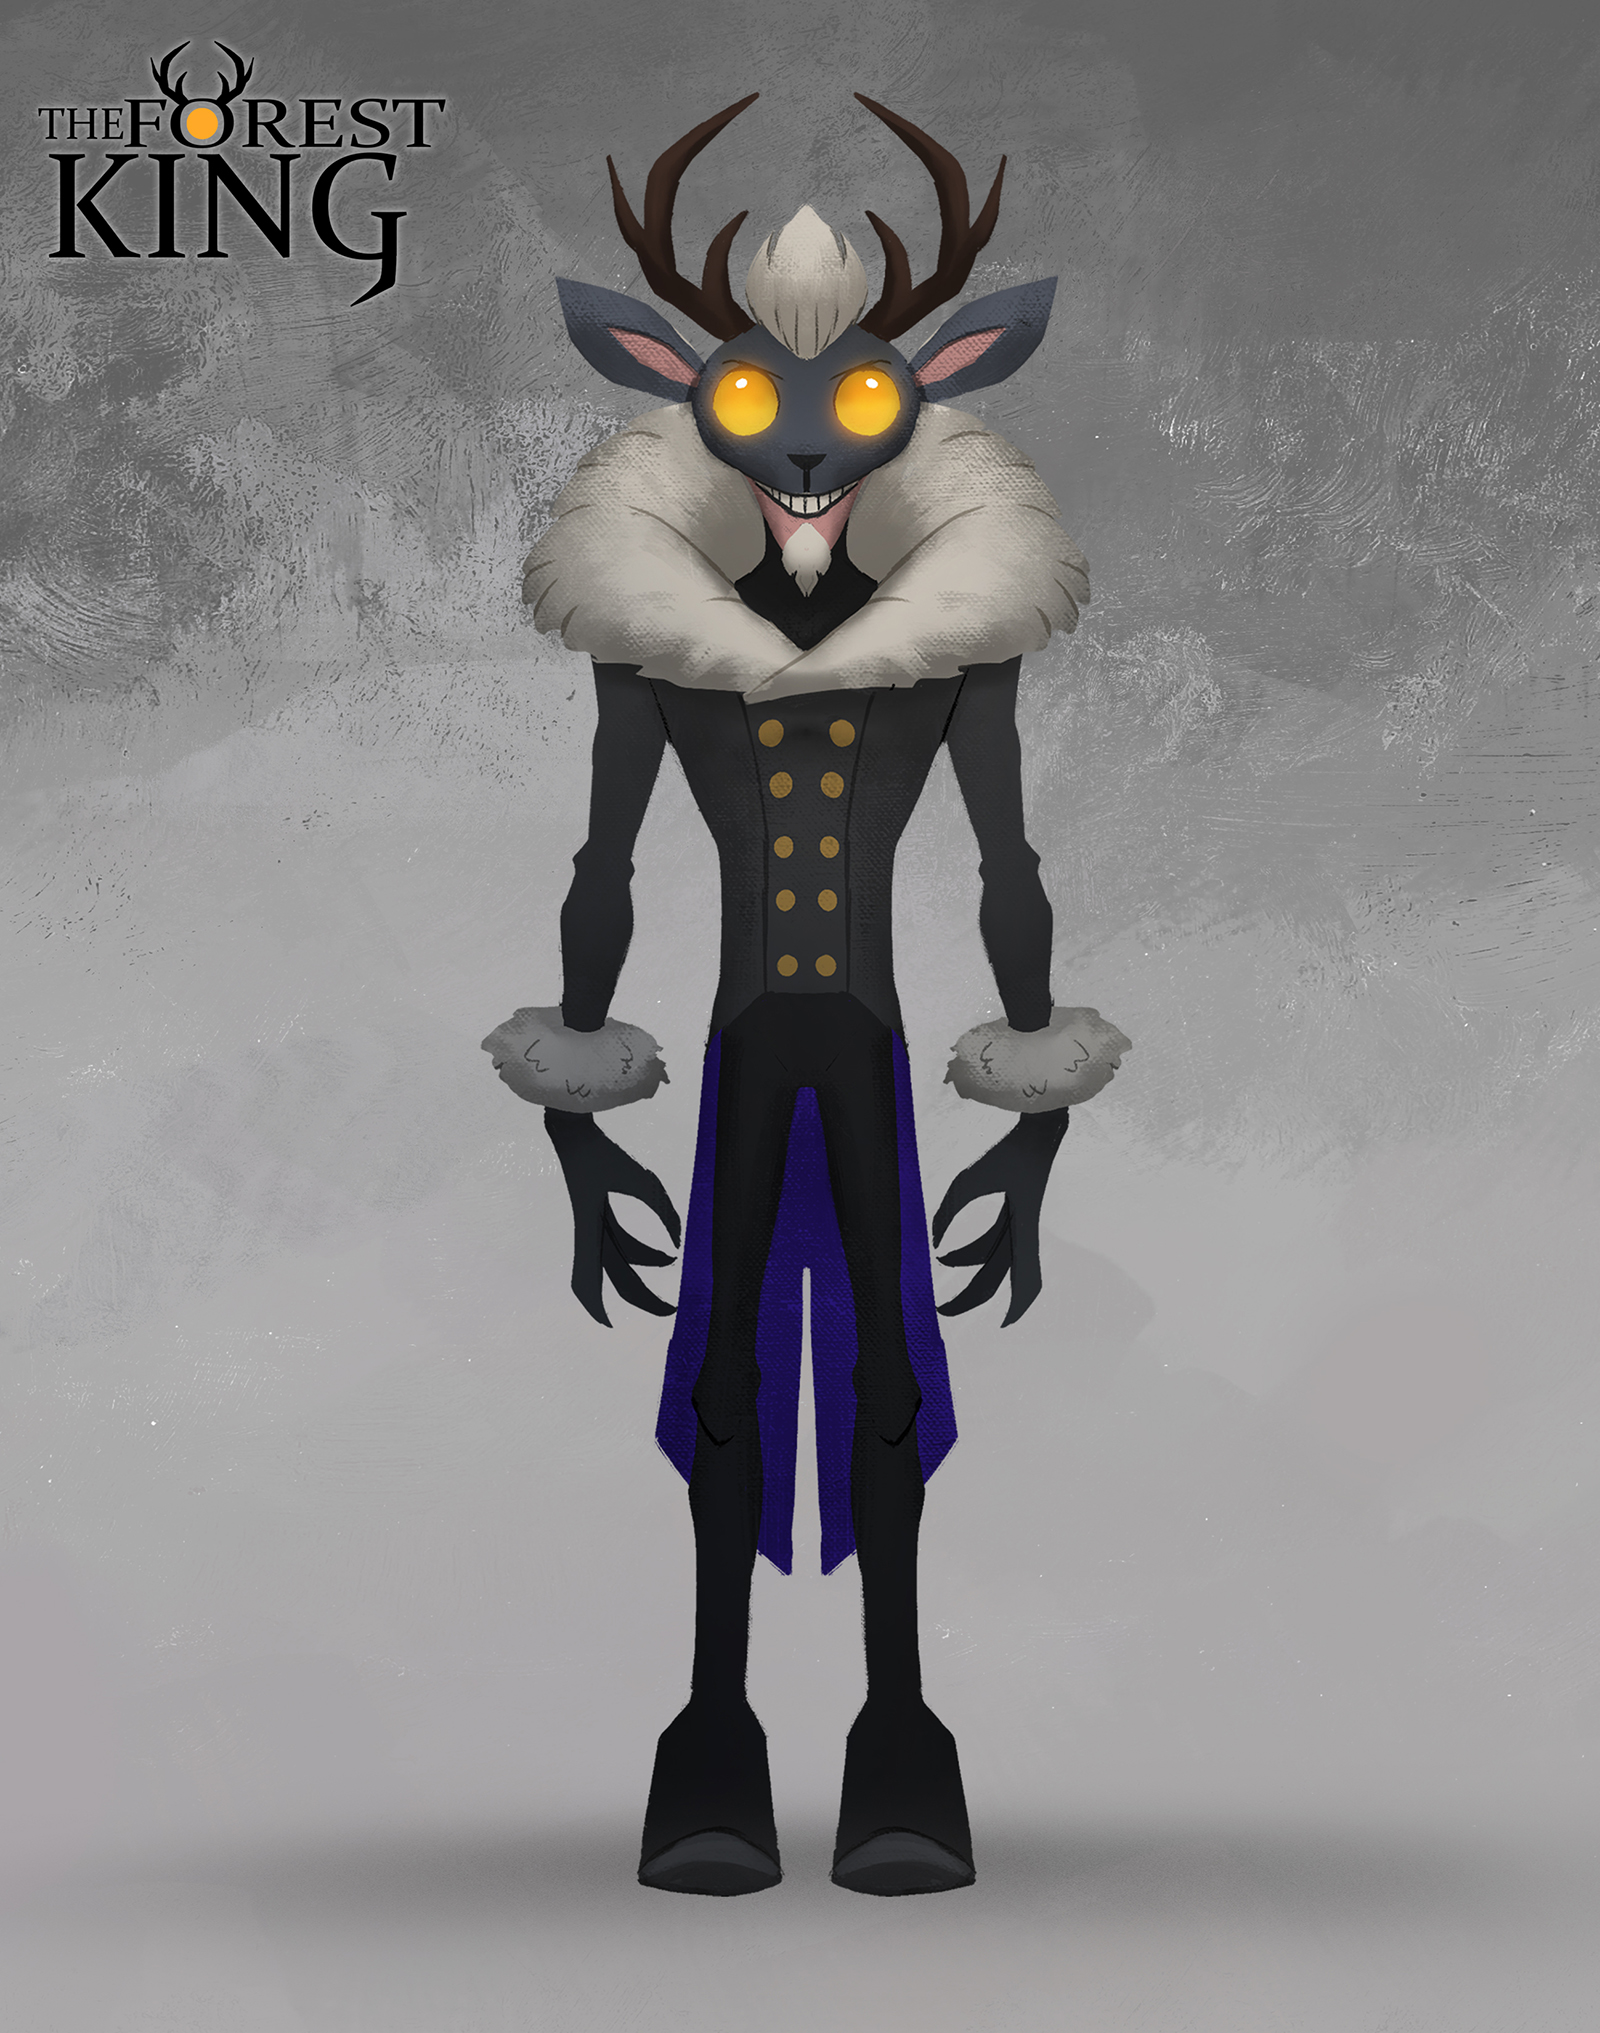 An illustration for The Forest King of a villain with antlers and a long coat.